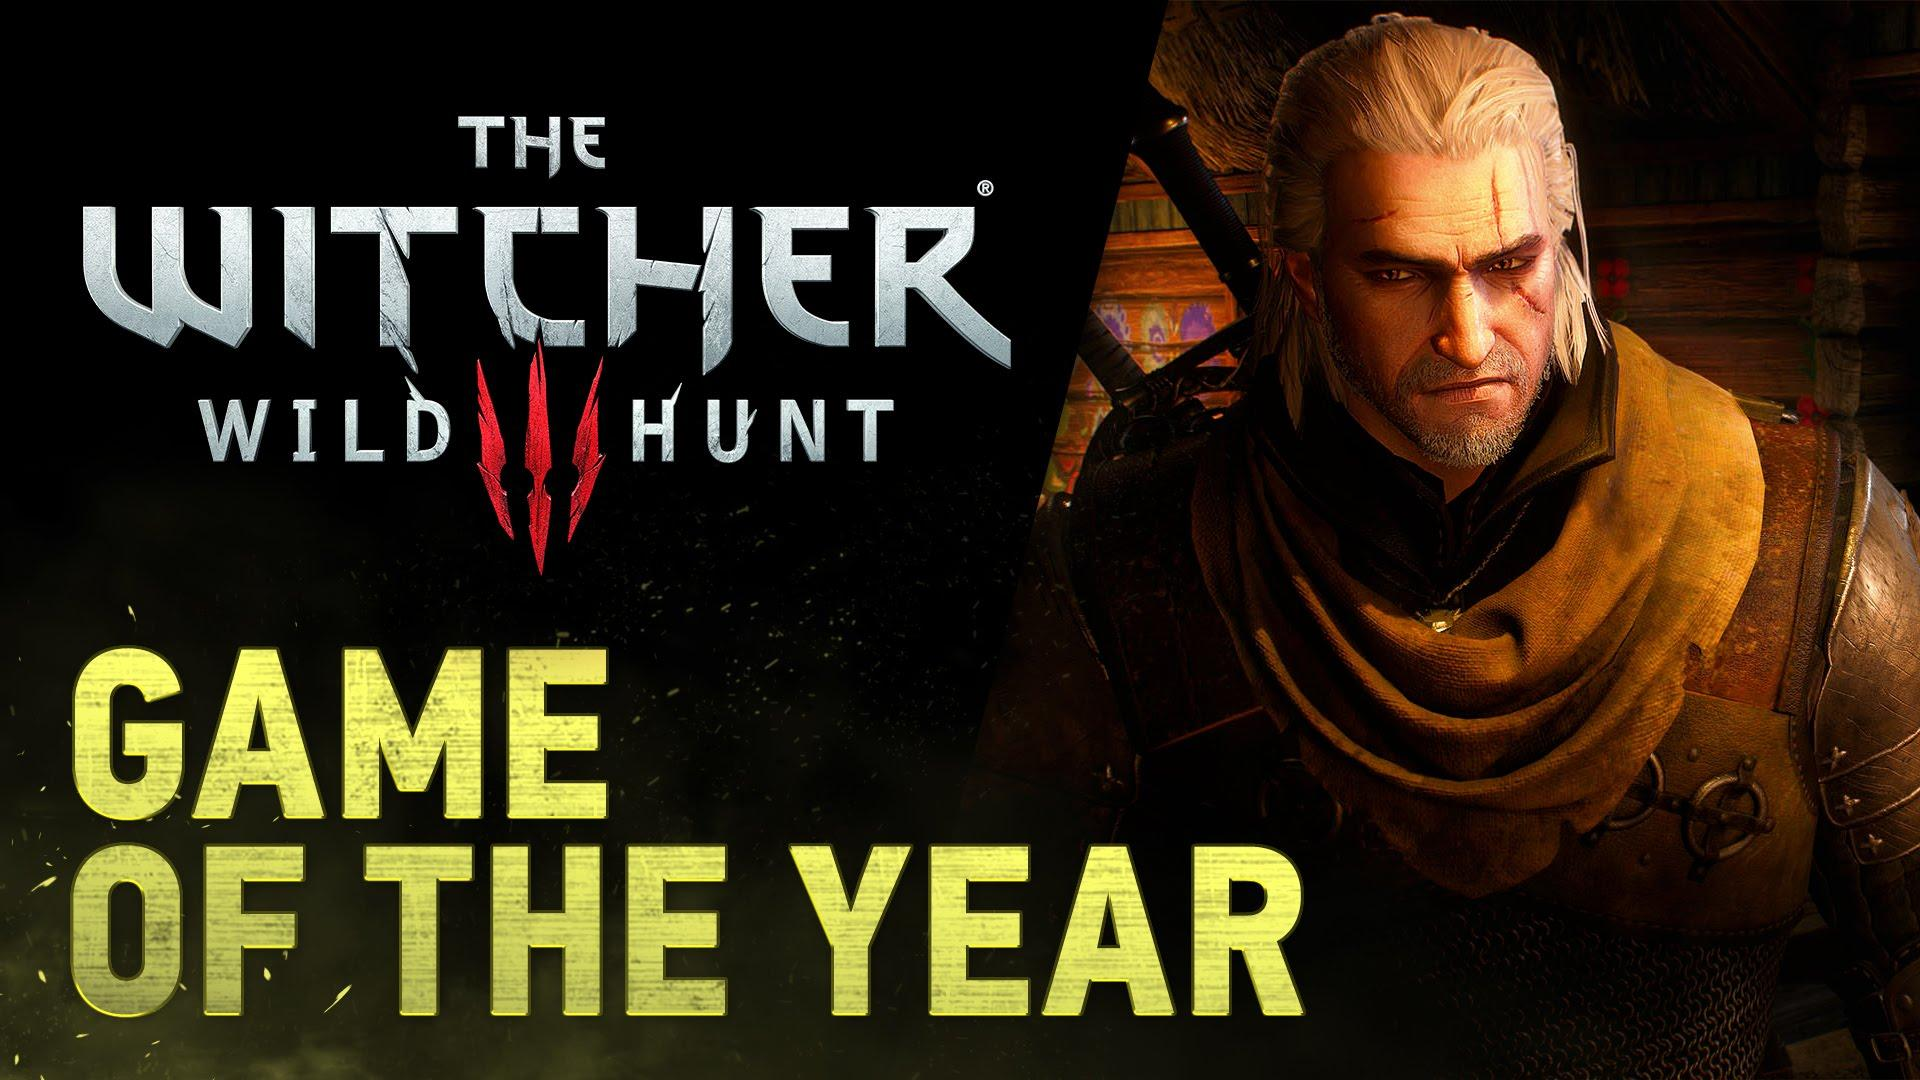 Download The Witcher 3: Wild Hunt – GotY Edition (v1.31/v1.32 + All DLCs + HD Reworked Project Mod v5.1, MULTi17) [FitGirl Repack]